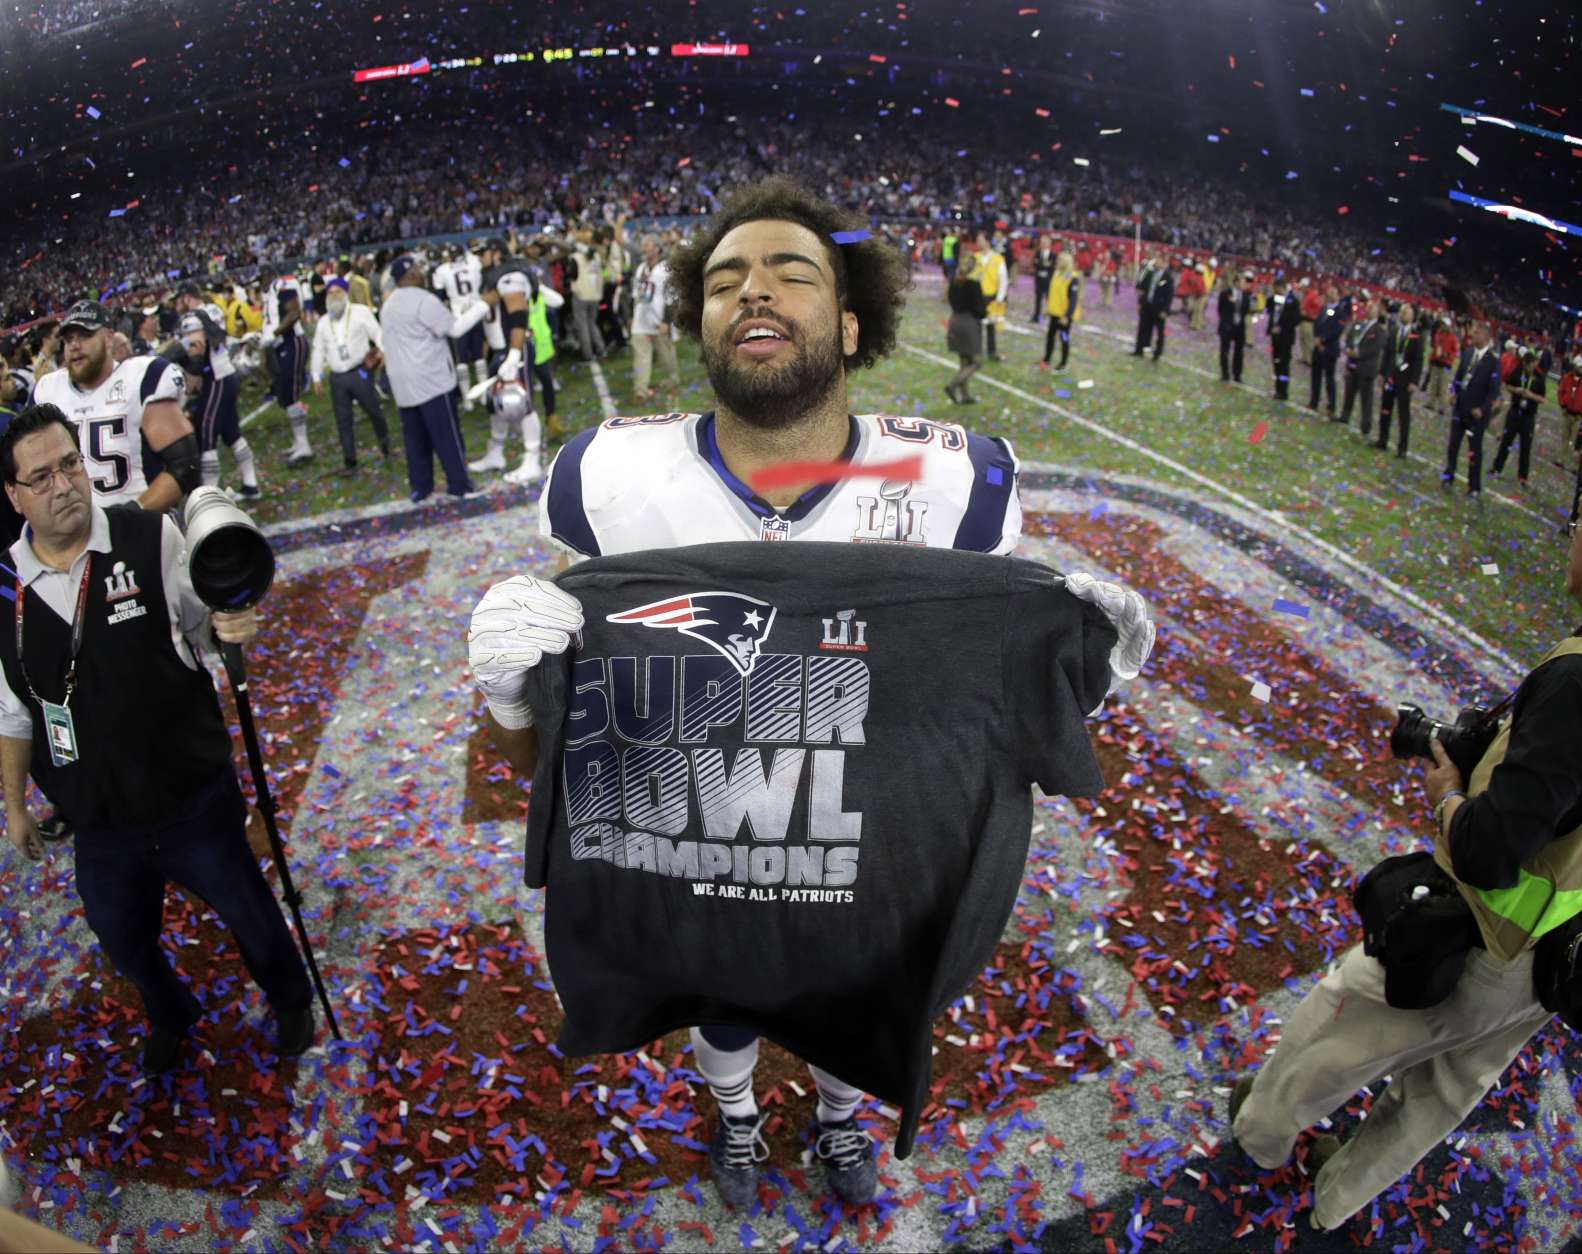 New England Patriots' Kyle Van Noy celebrates after the NFL Super Bowl 51 football game Sunday, Feb. 5, 2017, in Houston. The Patriots defeated the Atlanta Falcons 34-28 in overtime. (AP Photo/Mark Humphrey)